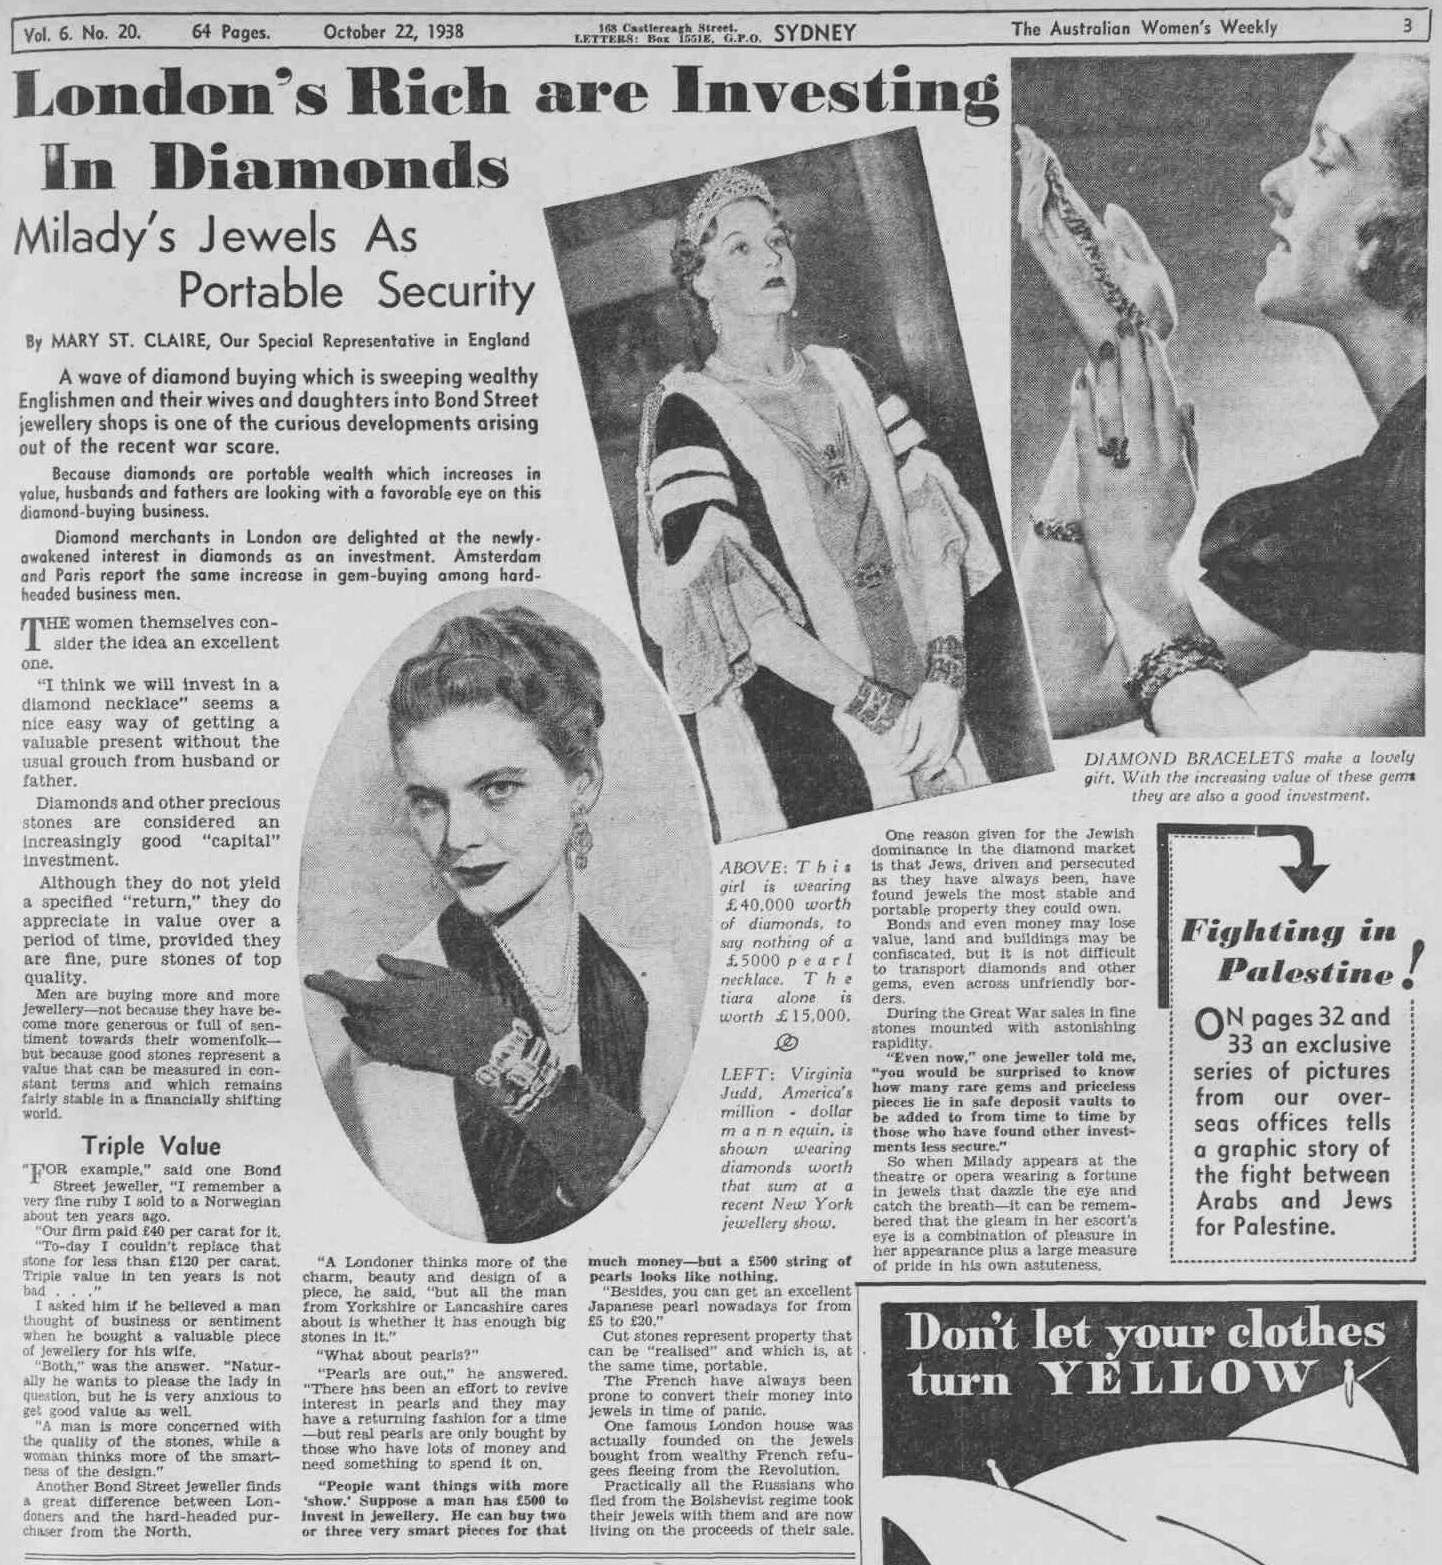 Vintage clothes fashion ads of the 1940s page 22 -  Londons Rich Investing In Diamonds 1938